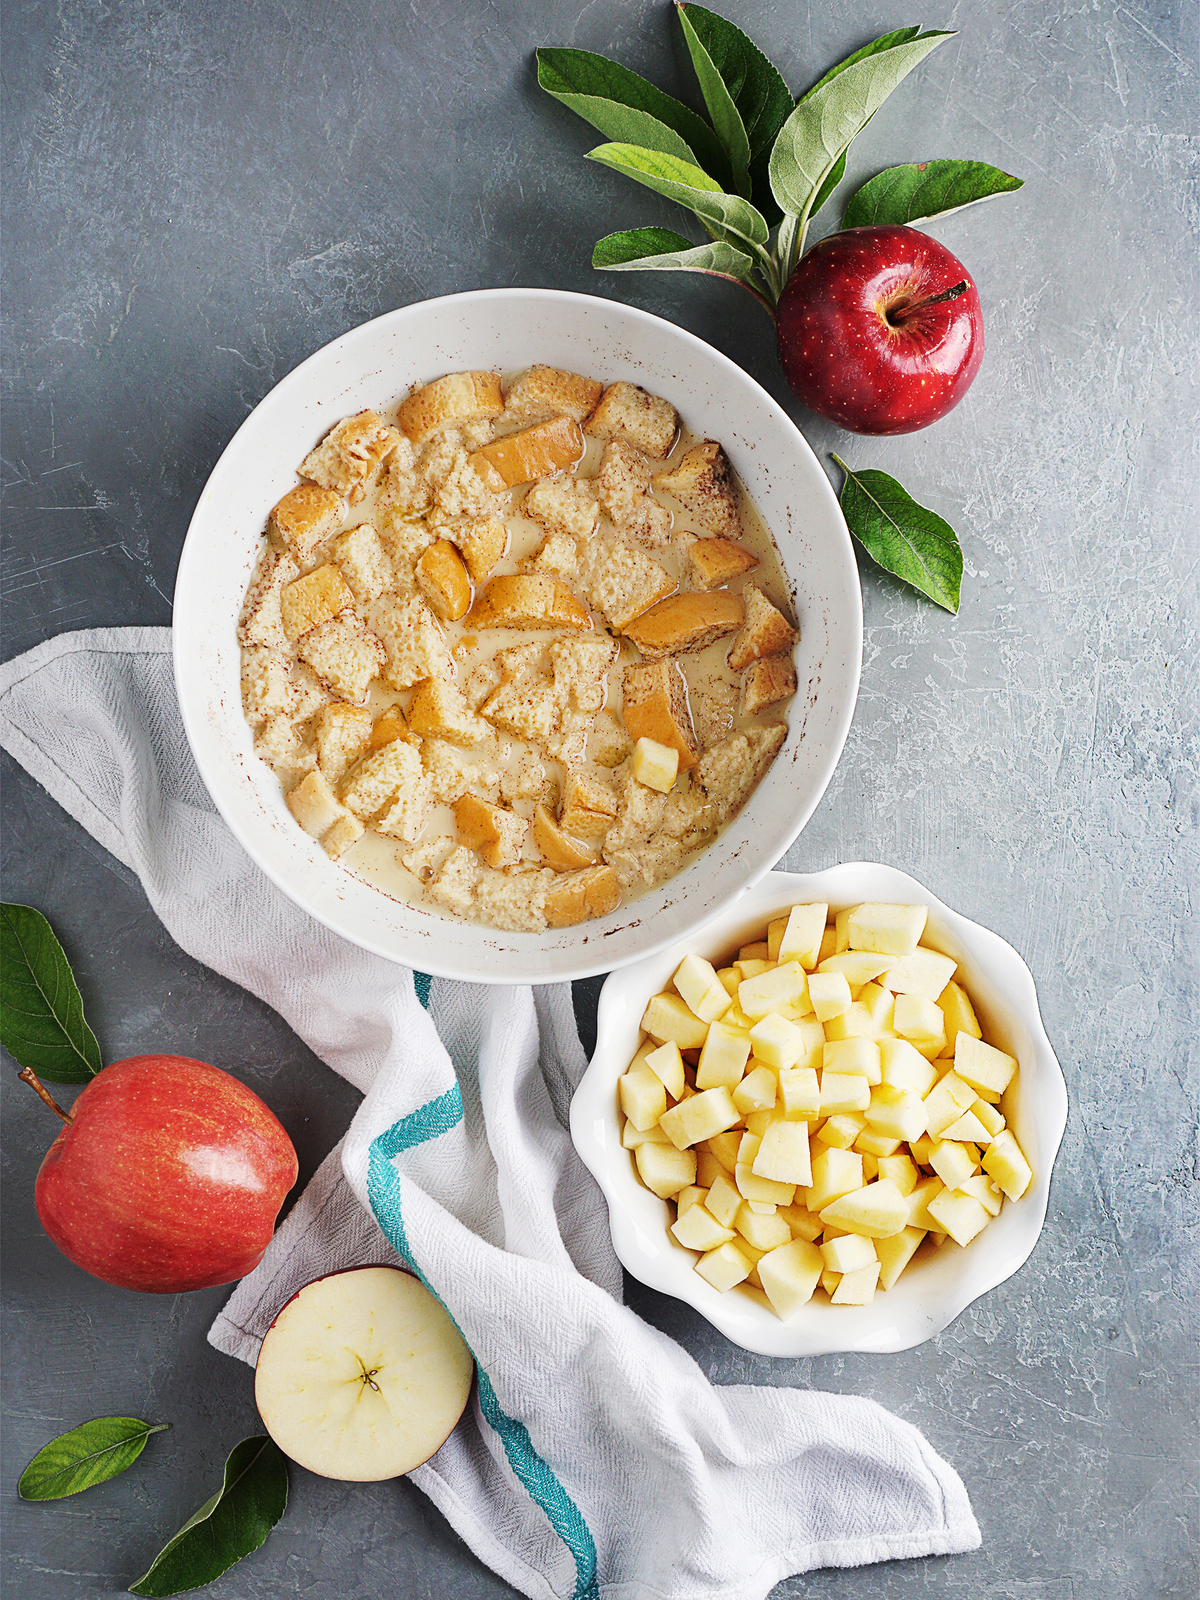 A bowl with bread soaking in egg & milk mixture and another bowl with apple chunks